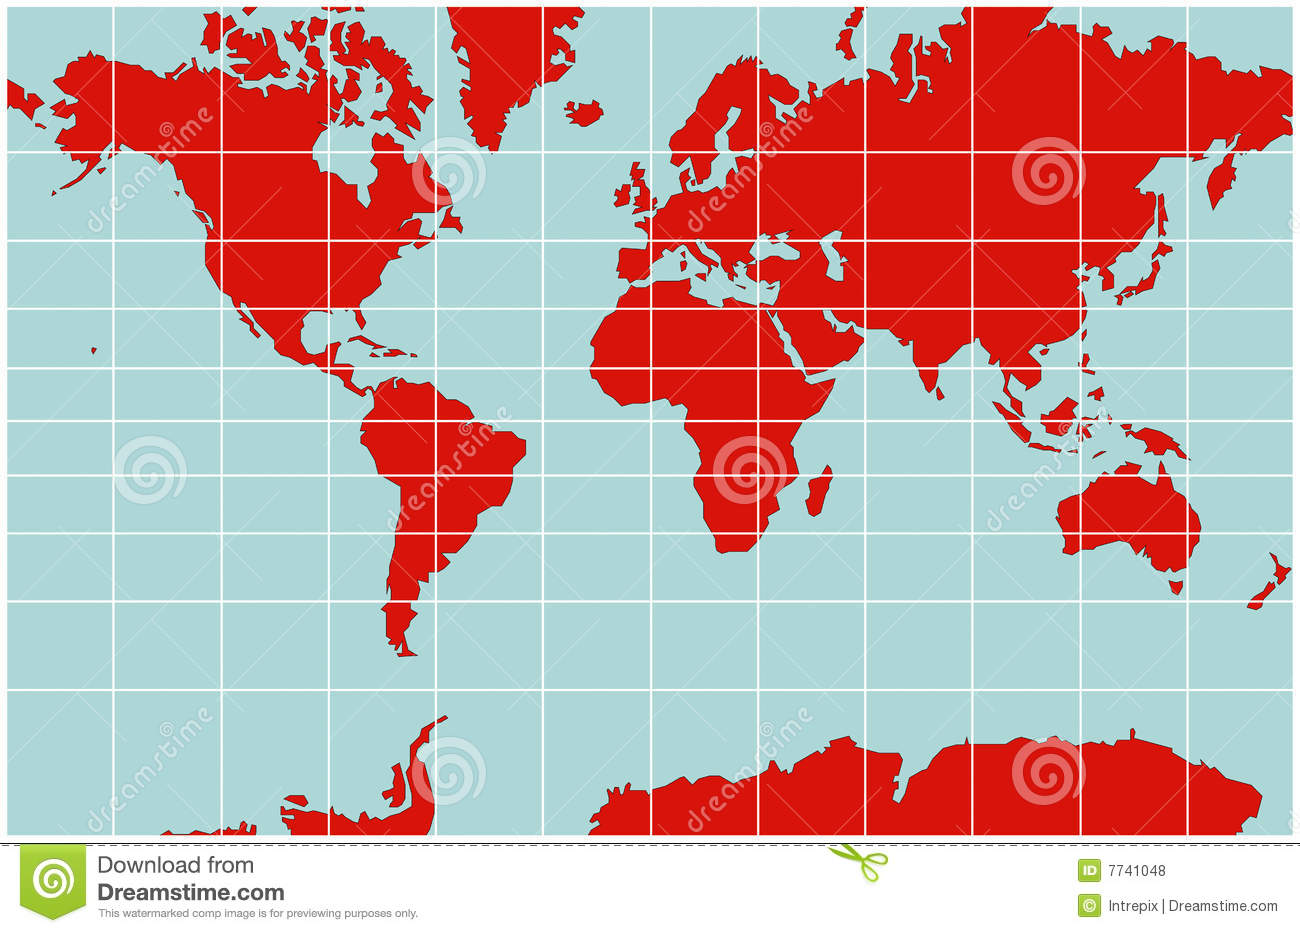 World map mercator projection stock vector illustration 7741048 world map mercator projection royalty free stock photo sciox Choice Image